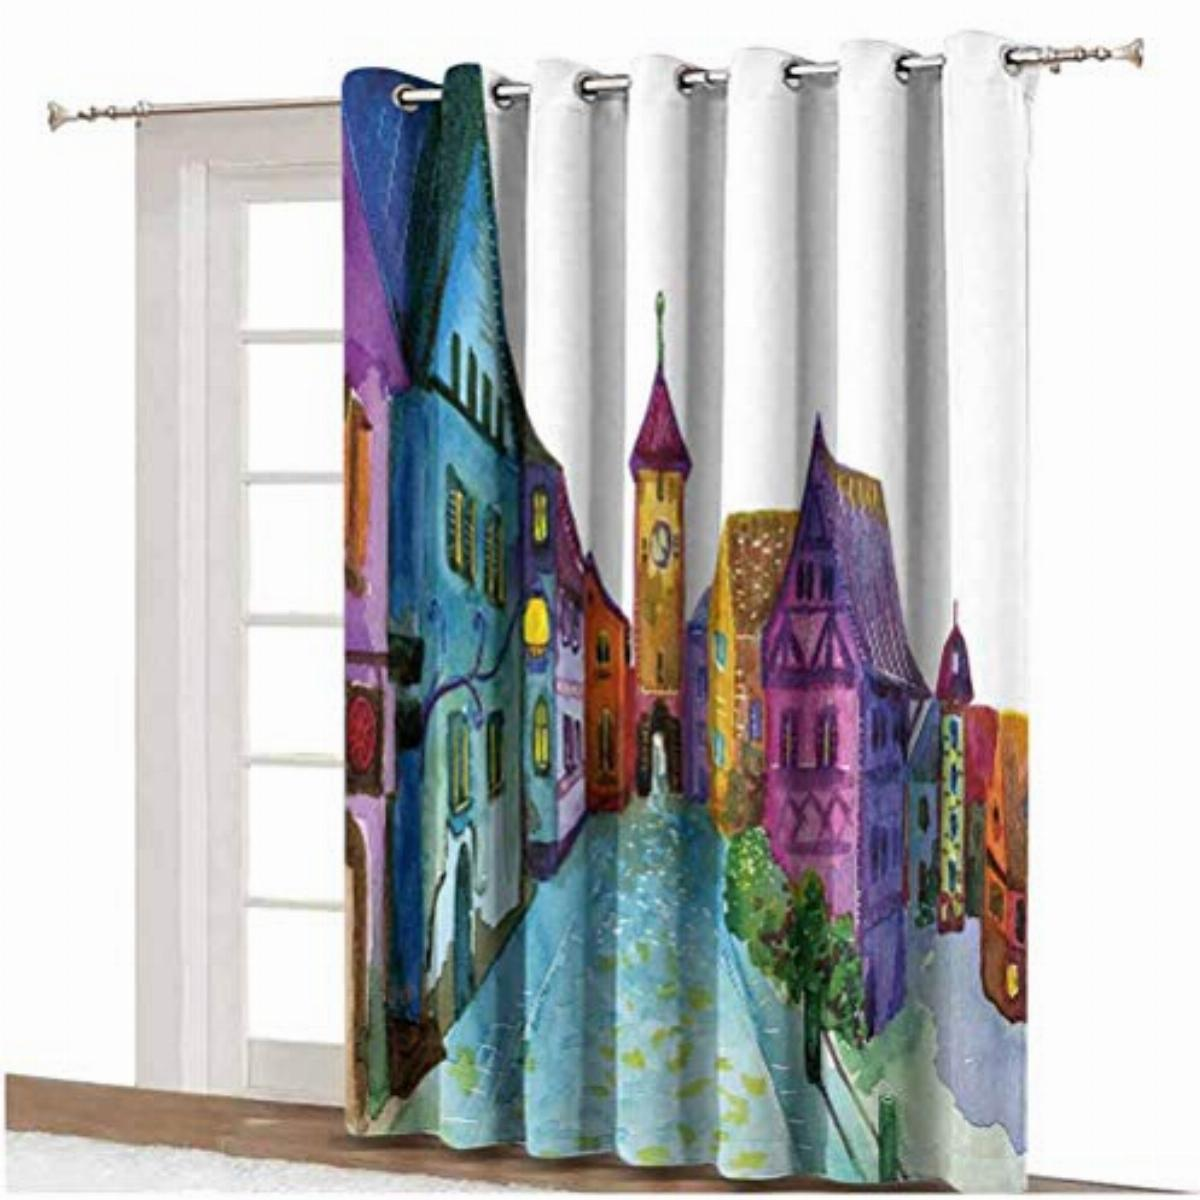 cartoon decor blackout patio door curtains european scenery with pastel colors and road aged old architecture image print grommets panels printed